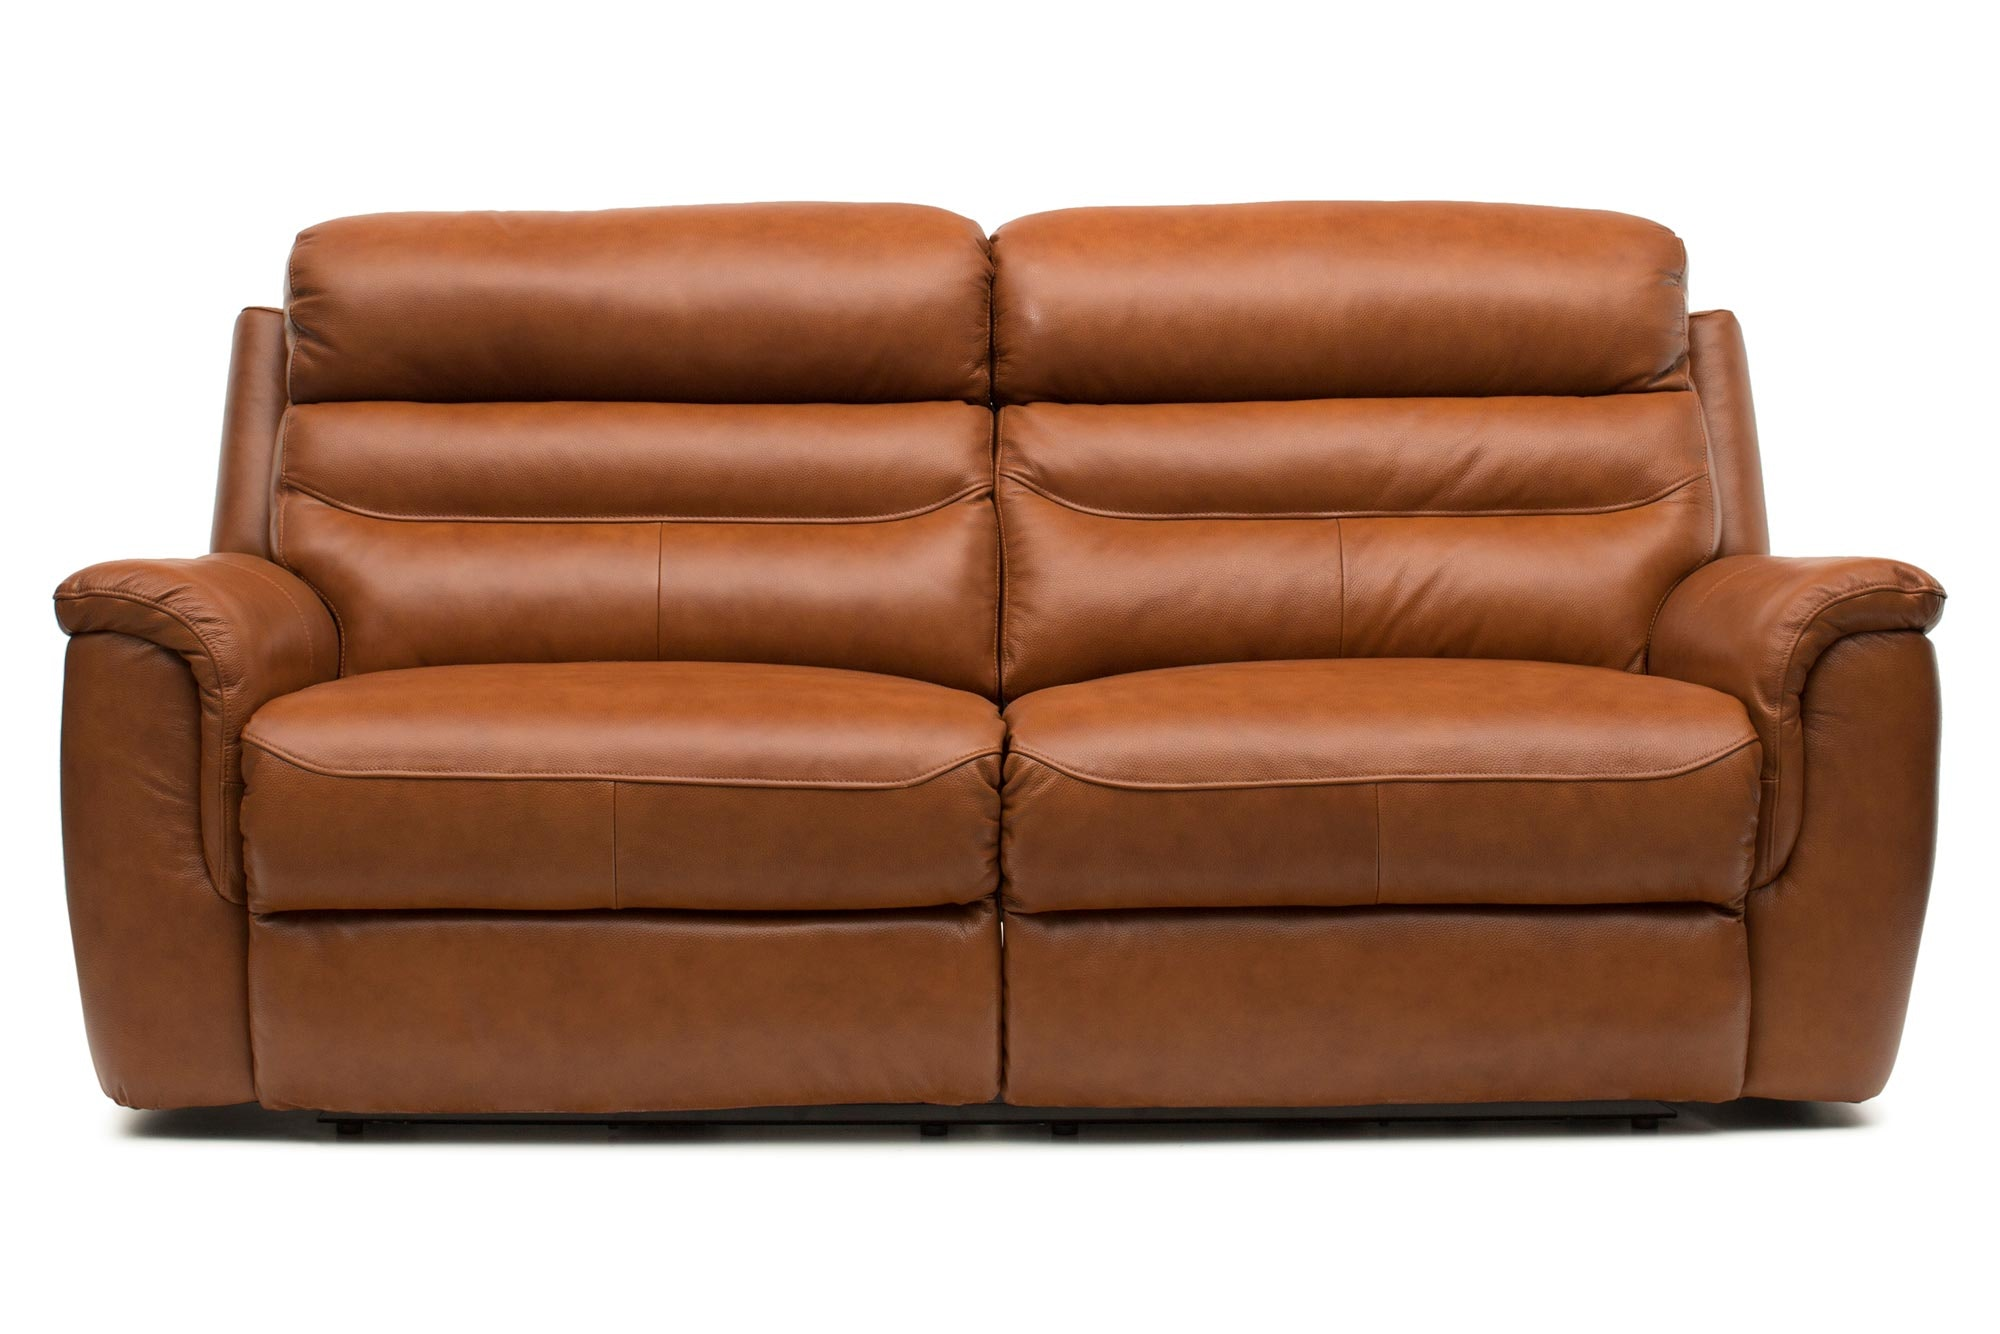 Bayle 3 Seater Leather Recliner Sofa